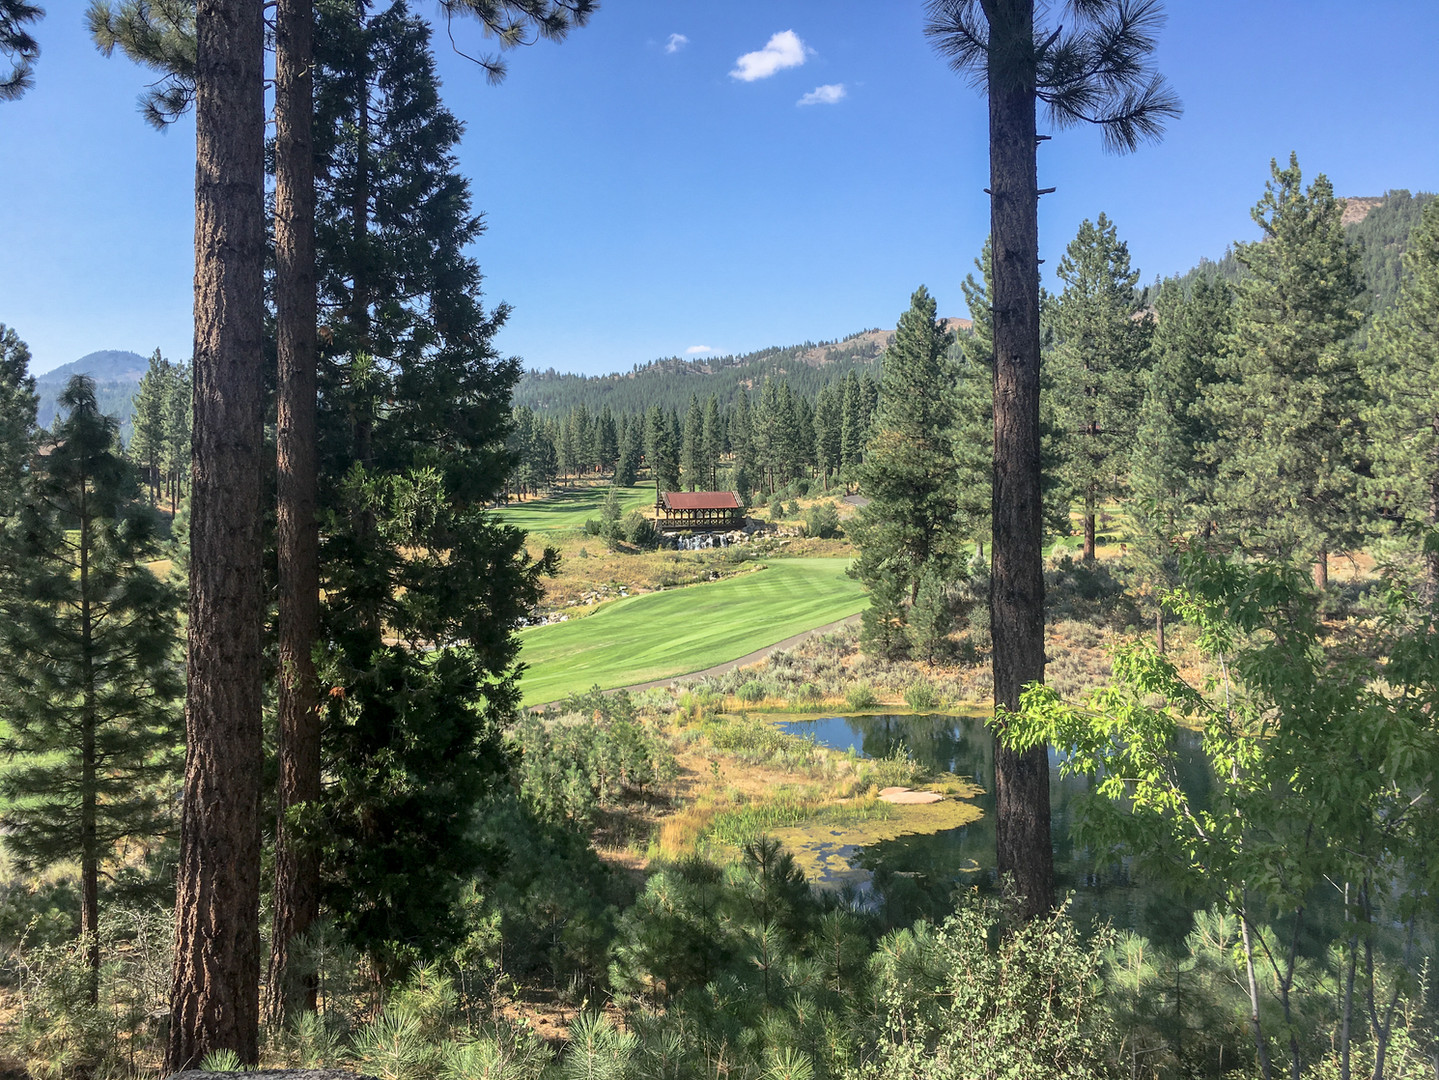 2017-08-12-16-40-20-GR2-Grizzly_Ranch_As